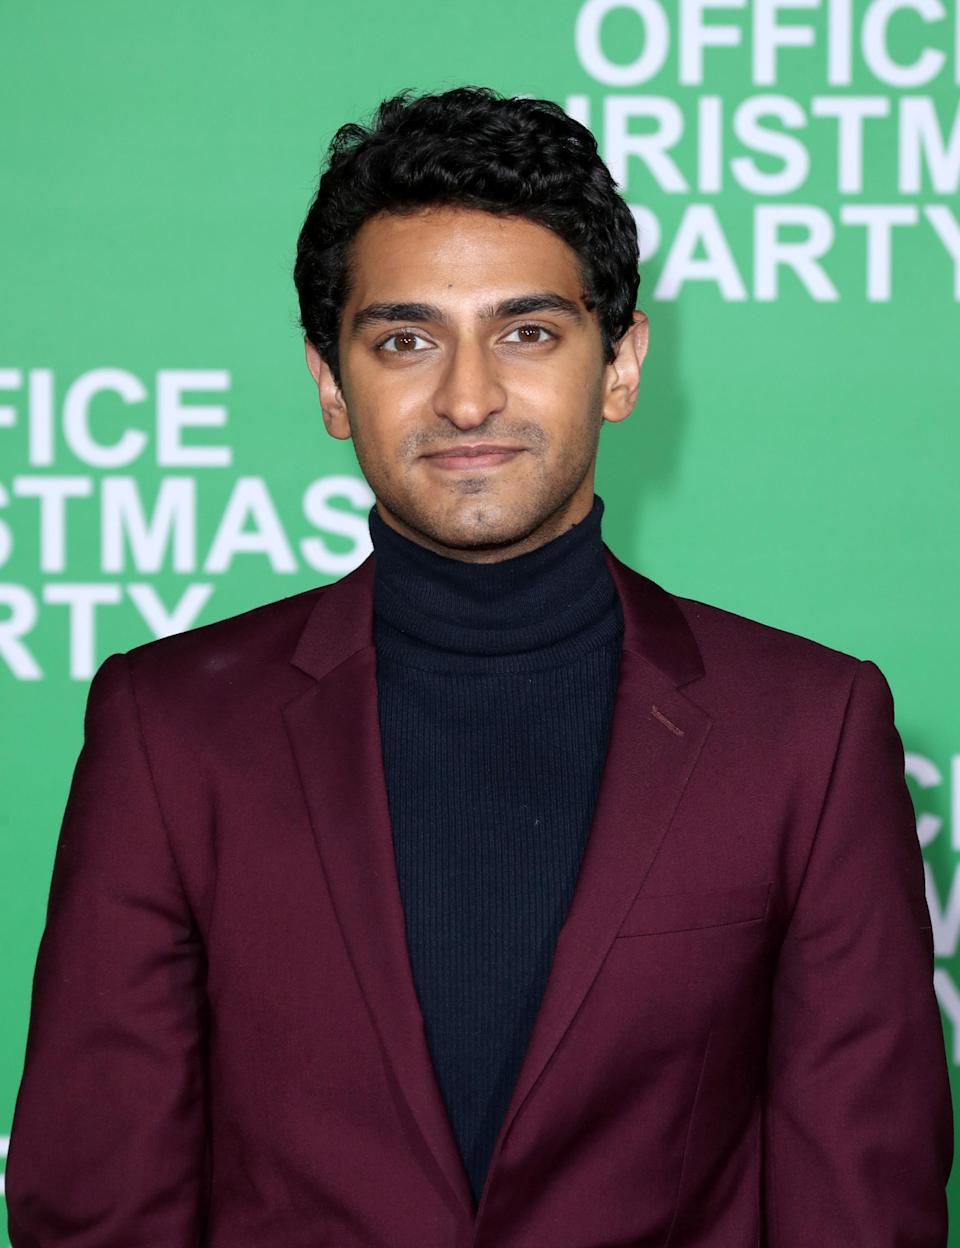 """Actor Karan Soni attends the LA Premiere of Paramount Pictures """"Office Christmas Party"""" on December 7, 2016. (Photo by Jonathan Leibson/Getty Images for Paramount Pictures)"""